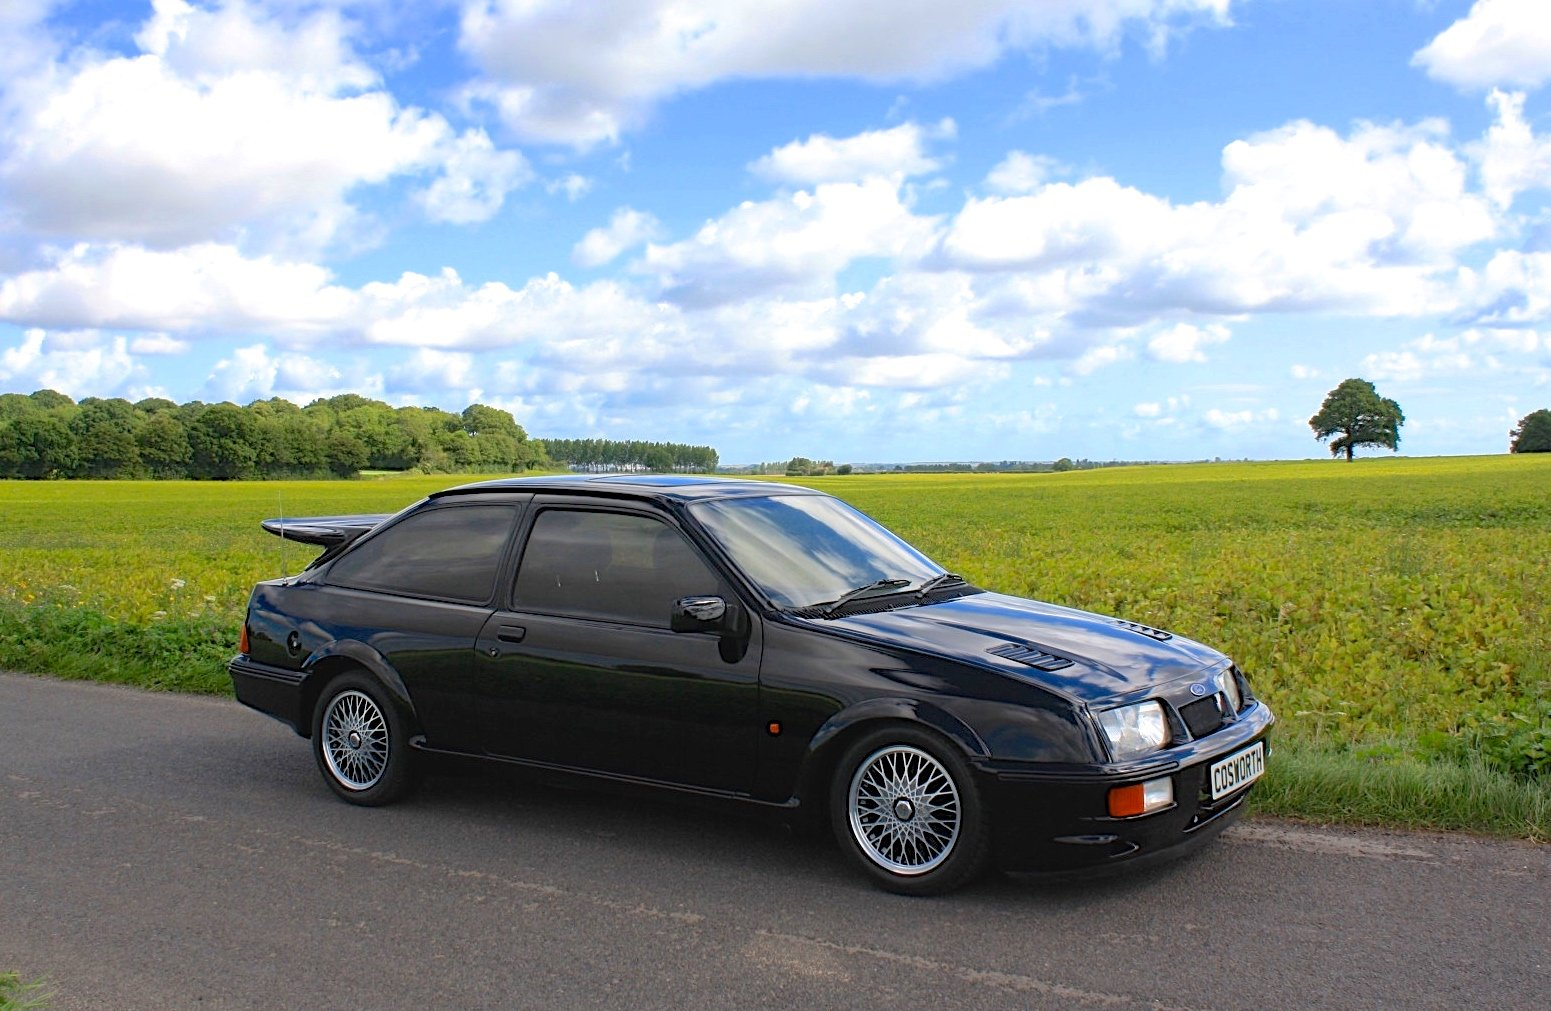 Ford Sierra RS Cosworth 1987.  Stunning Example Throughout. For Sale (picture 1 of 6)